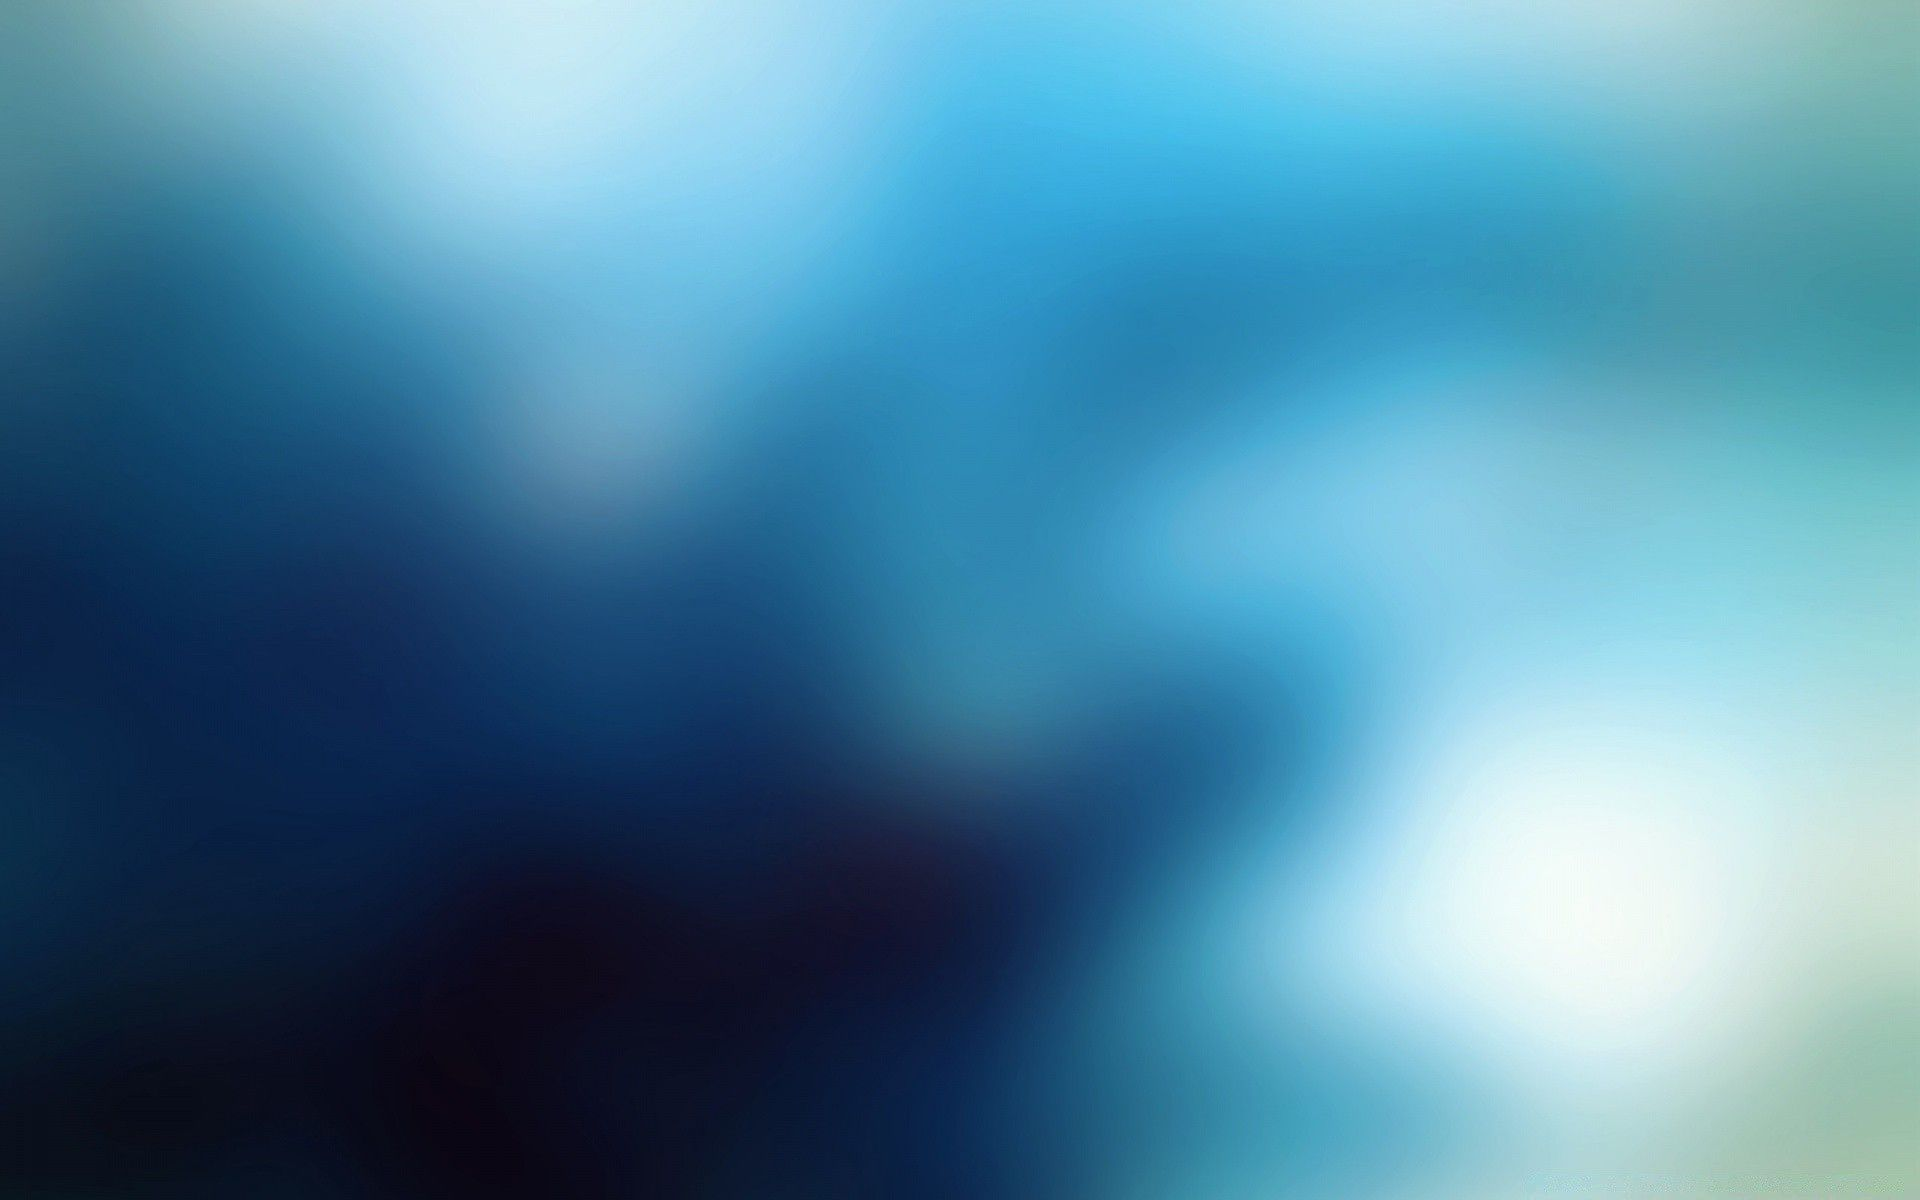 Blurry Blue Background Free Wallpapers Blurred Background Background Dark Circles